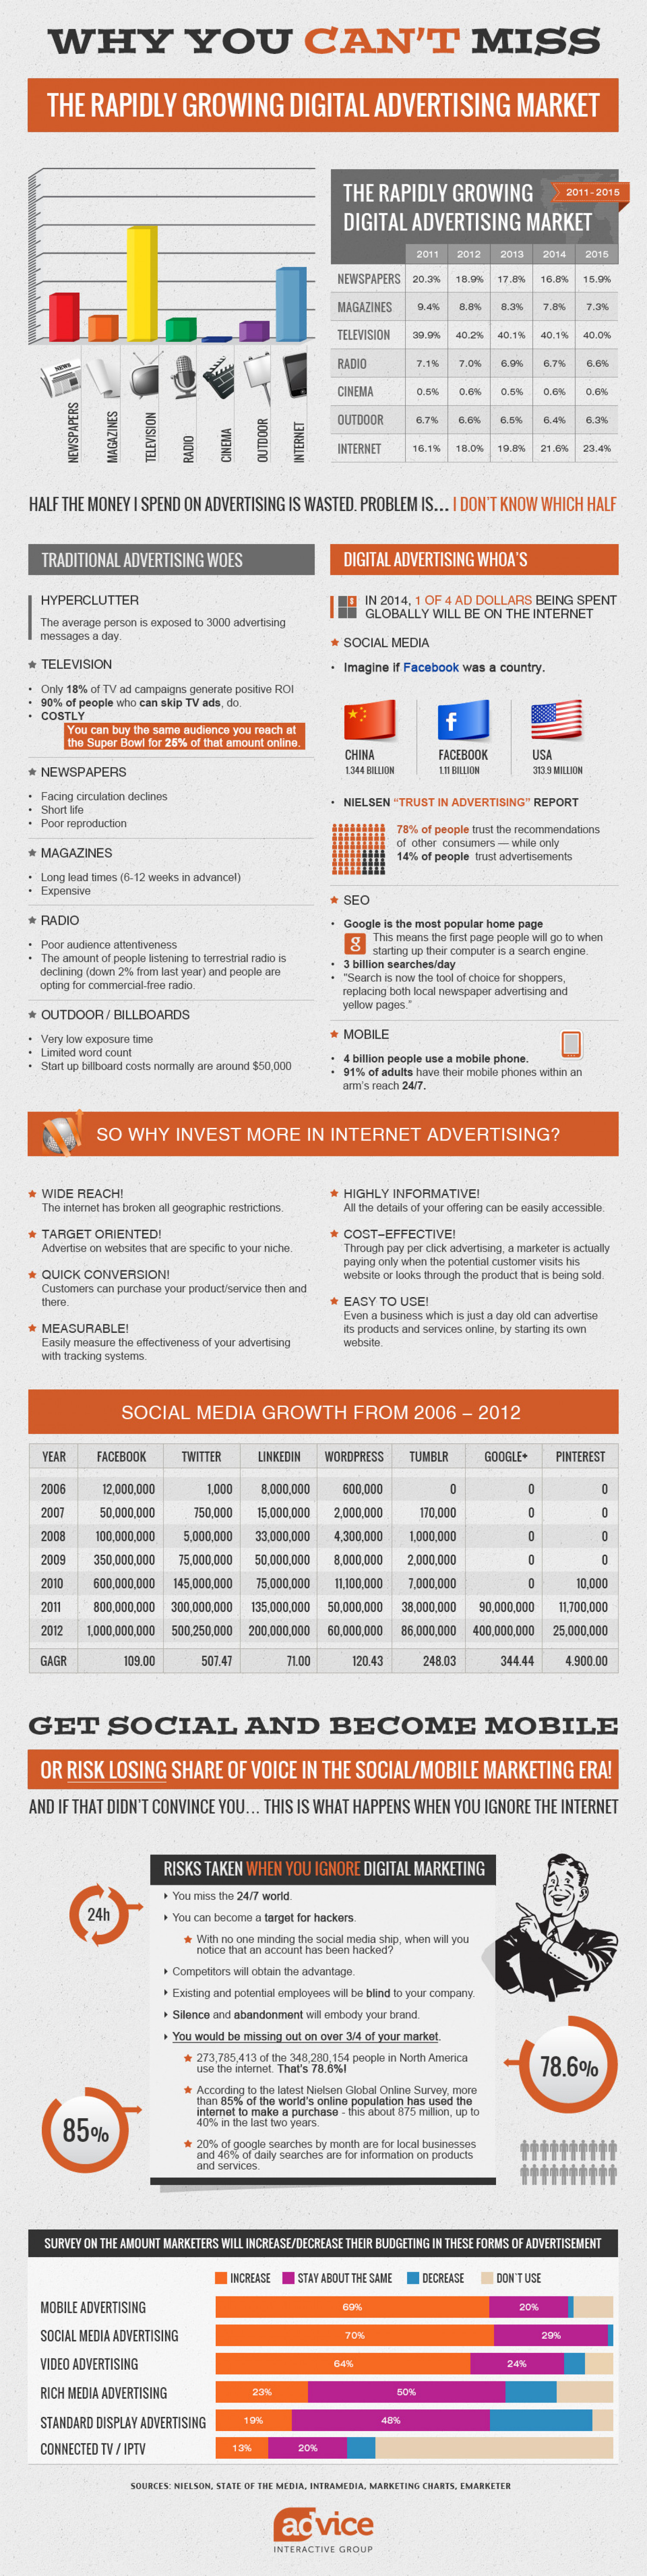 Internet Marketing Statistics You Can't Ignore Infographic